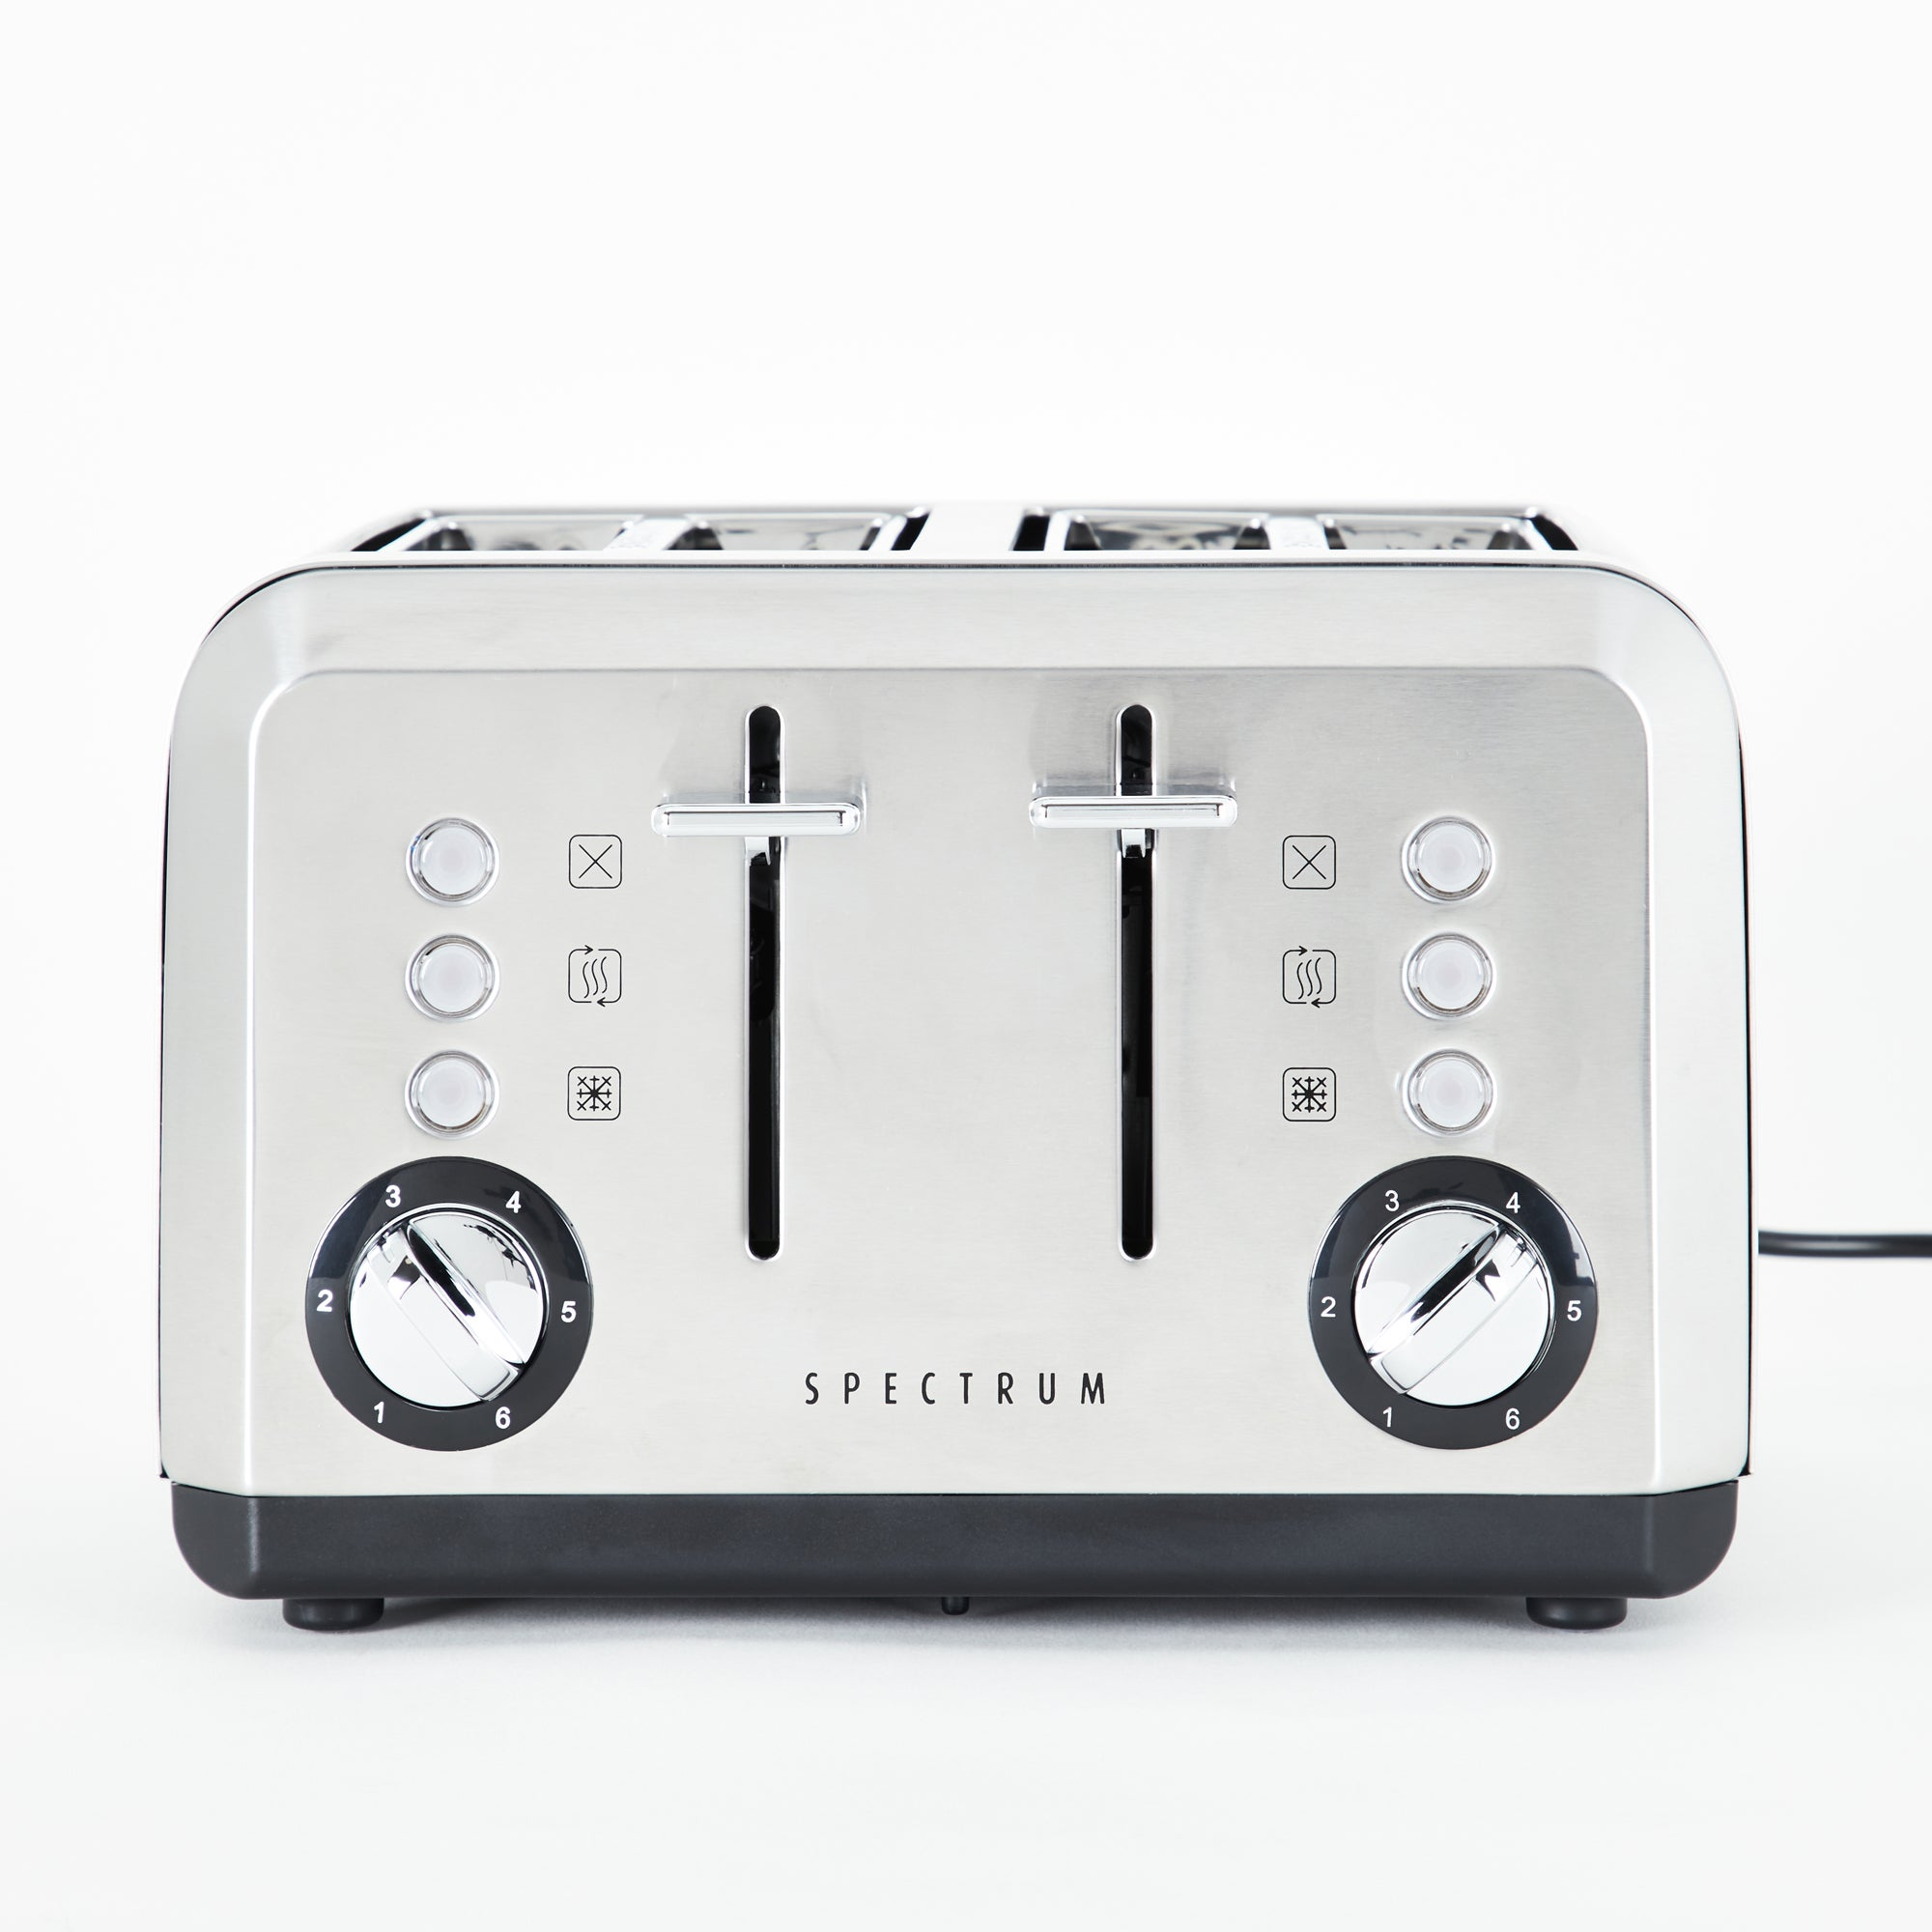 Spectrum Brushed Stainless Steel 4 Slice Toaster Stainless Steel